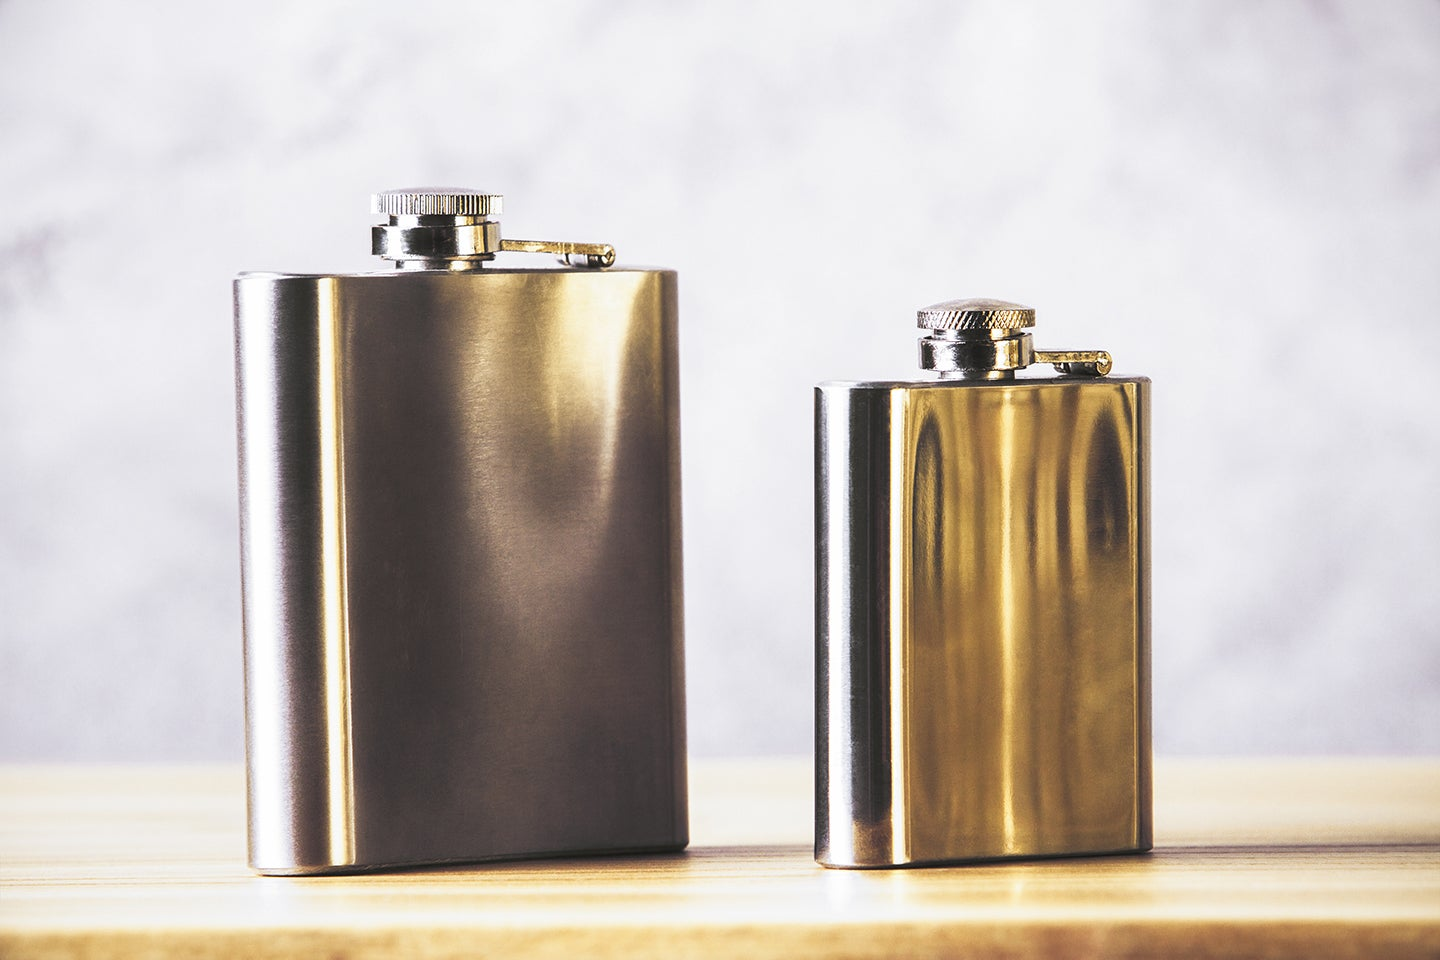 Two flasks